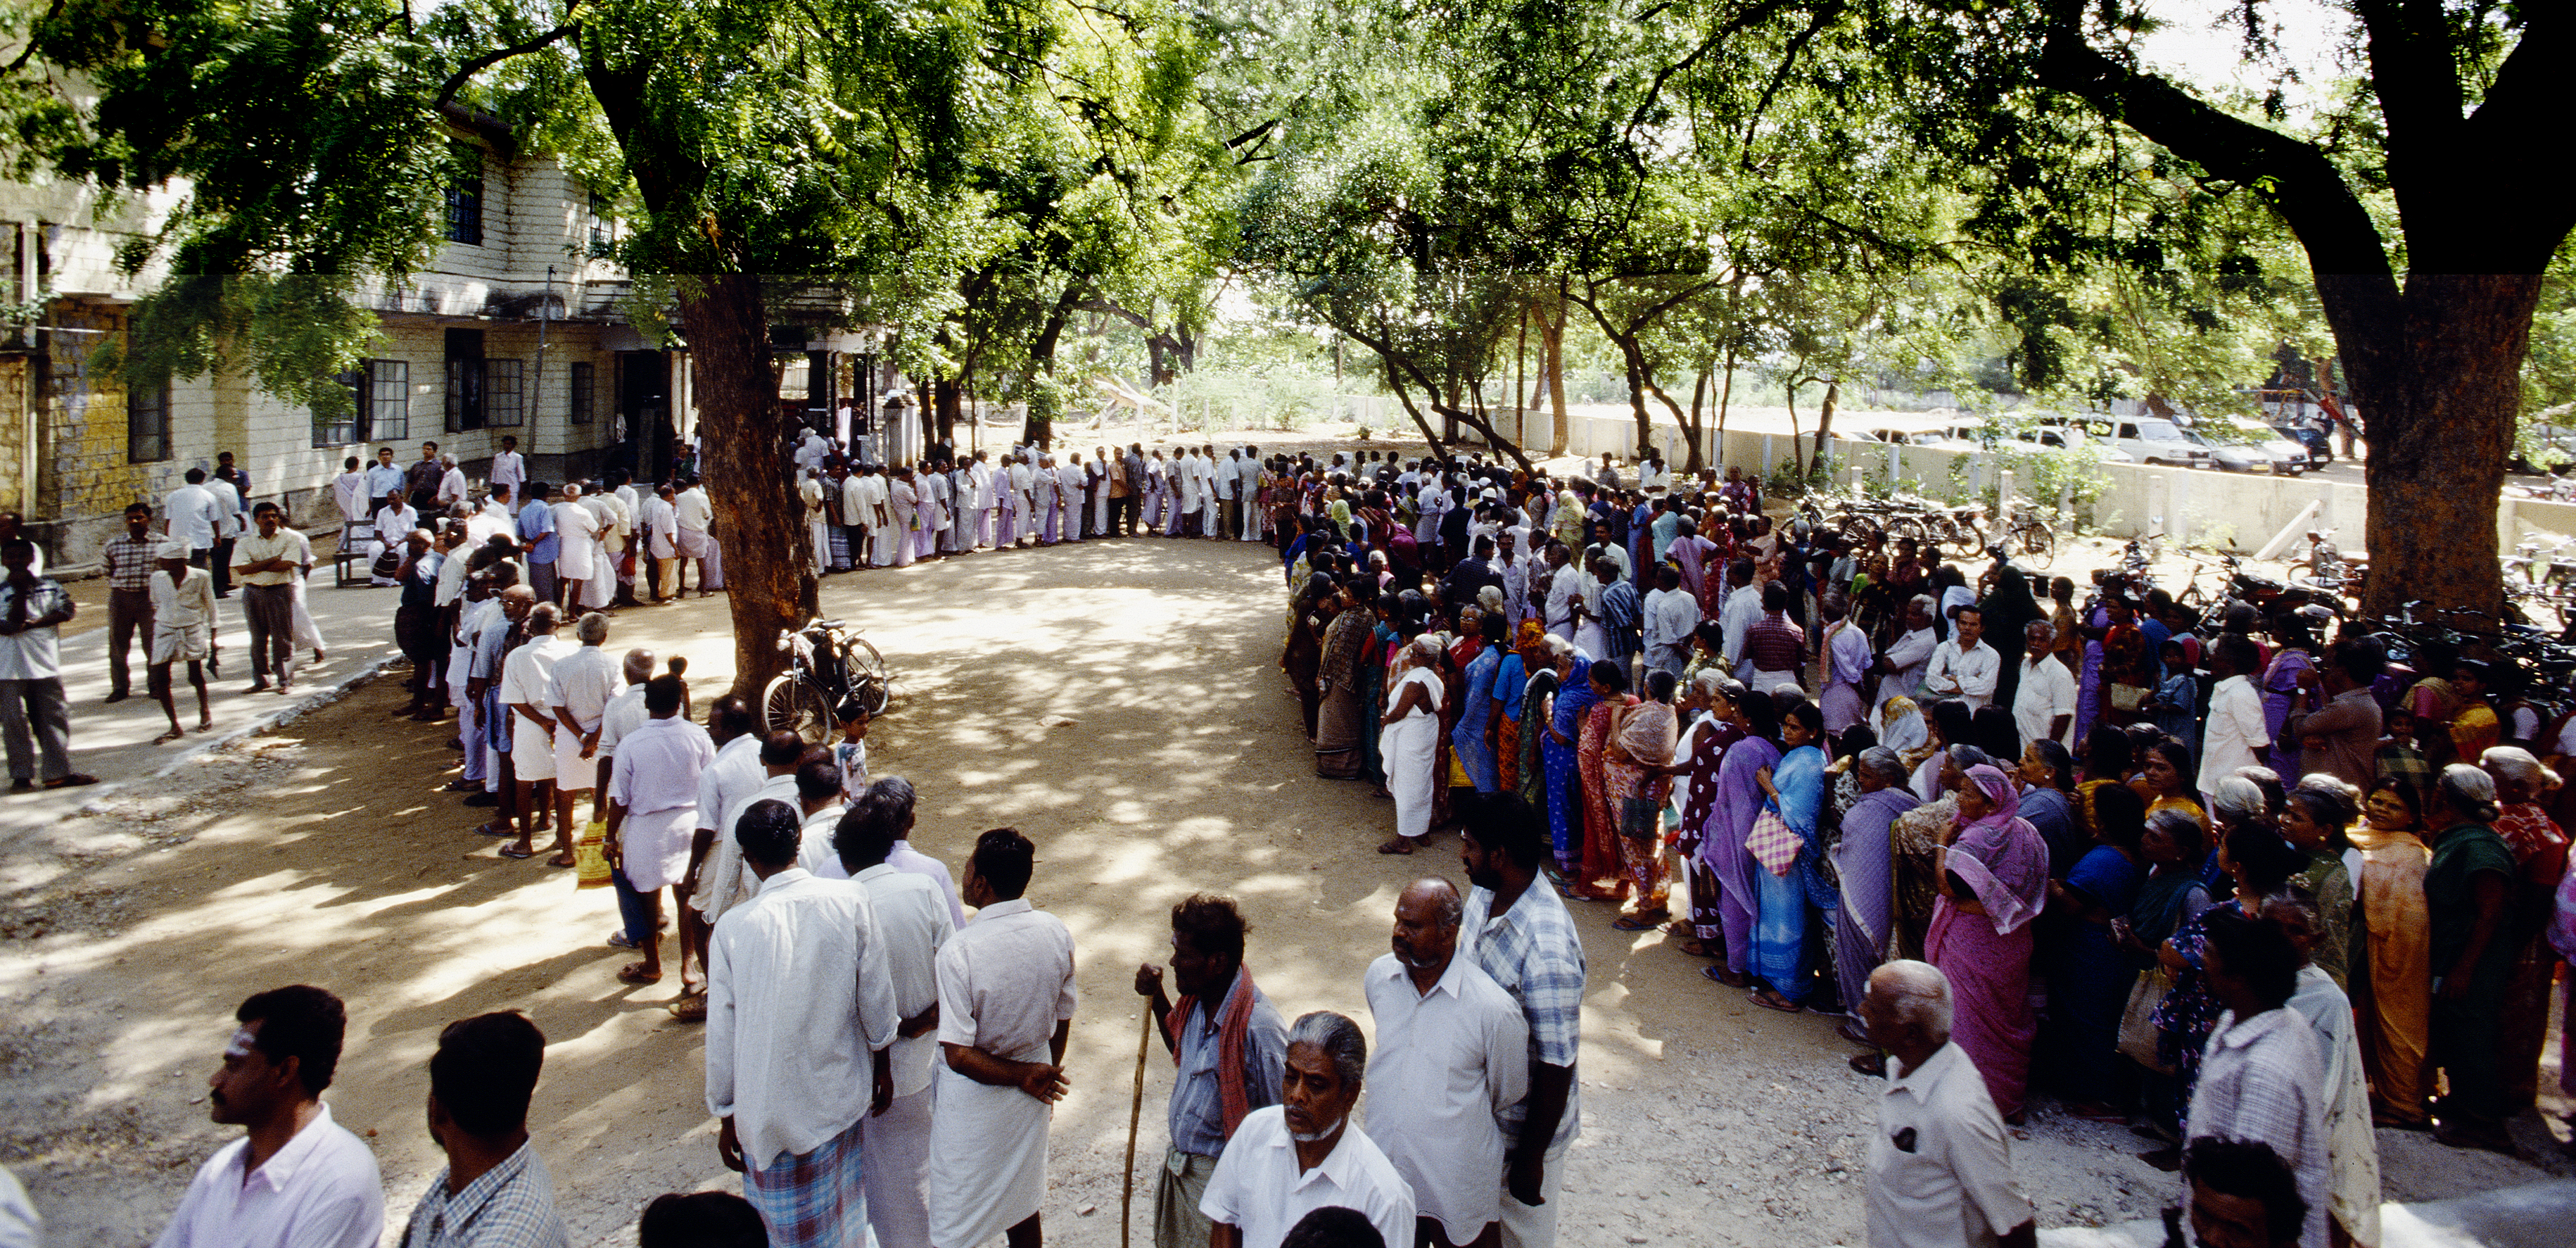 A queue of people in India.